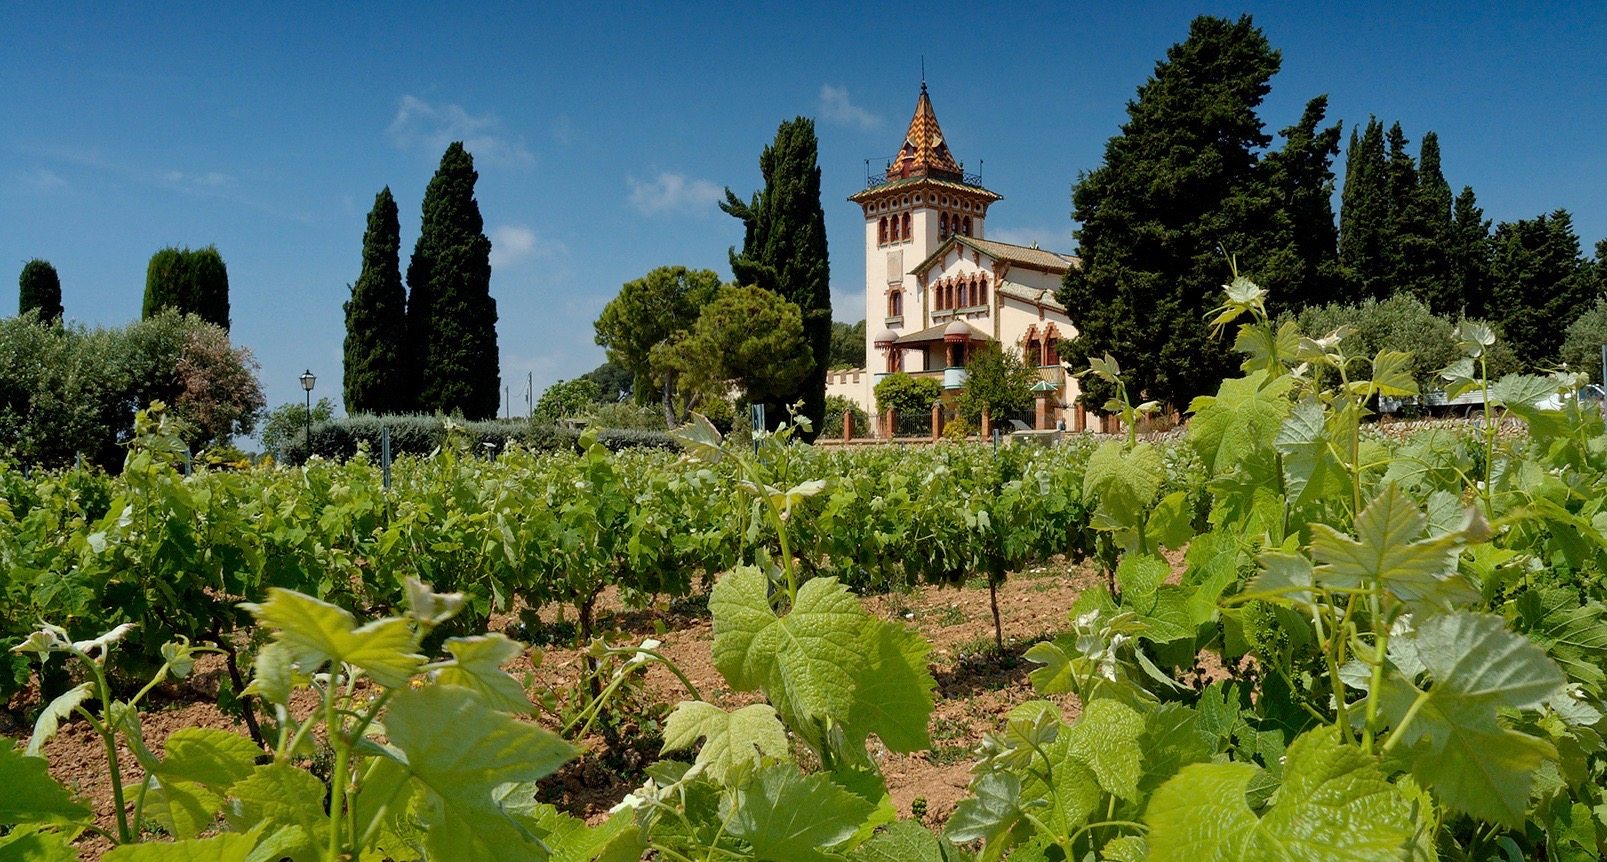 When thinking of Italy, one thinks of a typical Italian vineyard scene, with vines growing together with olive trees. All located in the countryside of Tuscany. Italy is world-renowned when it comes to wine-producing.